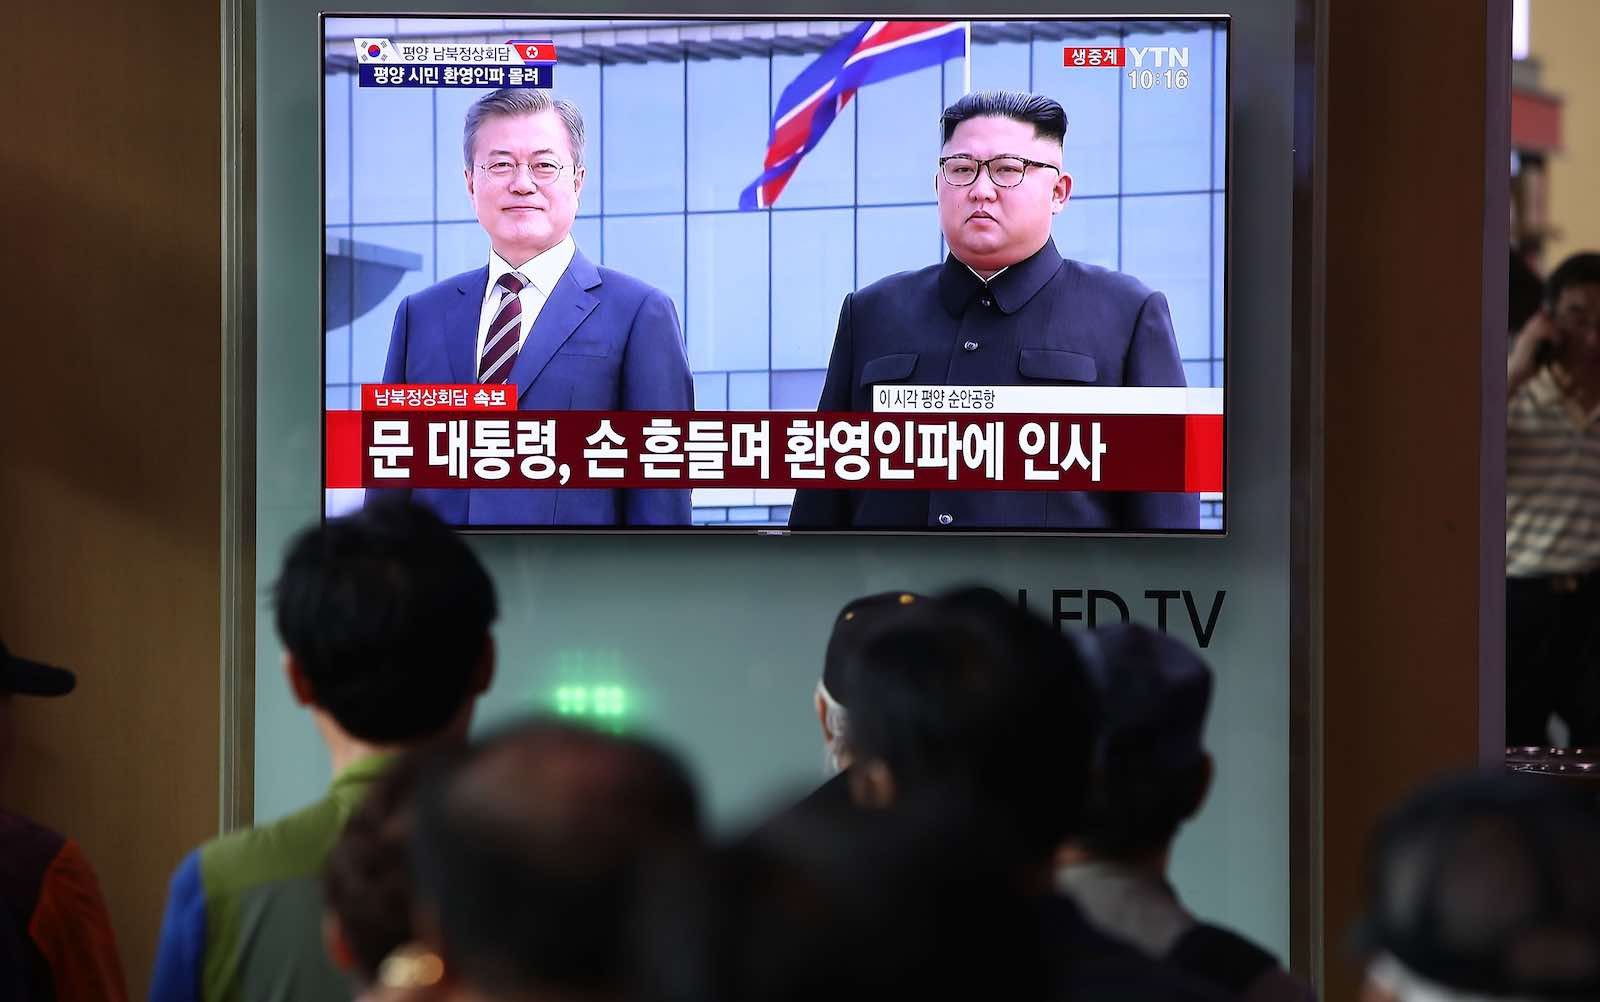 South Koreans watch a television broadcast reporting President Moon Jae-in meeting with North Korea's Kim Jong-un on 18 September (Photo: Chung Sung-Jun/Getty)